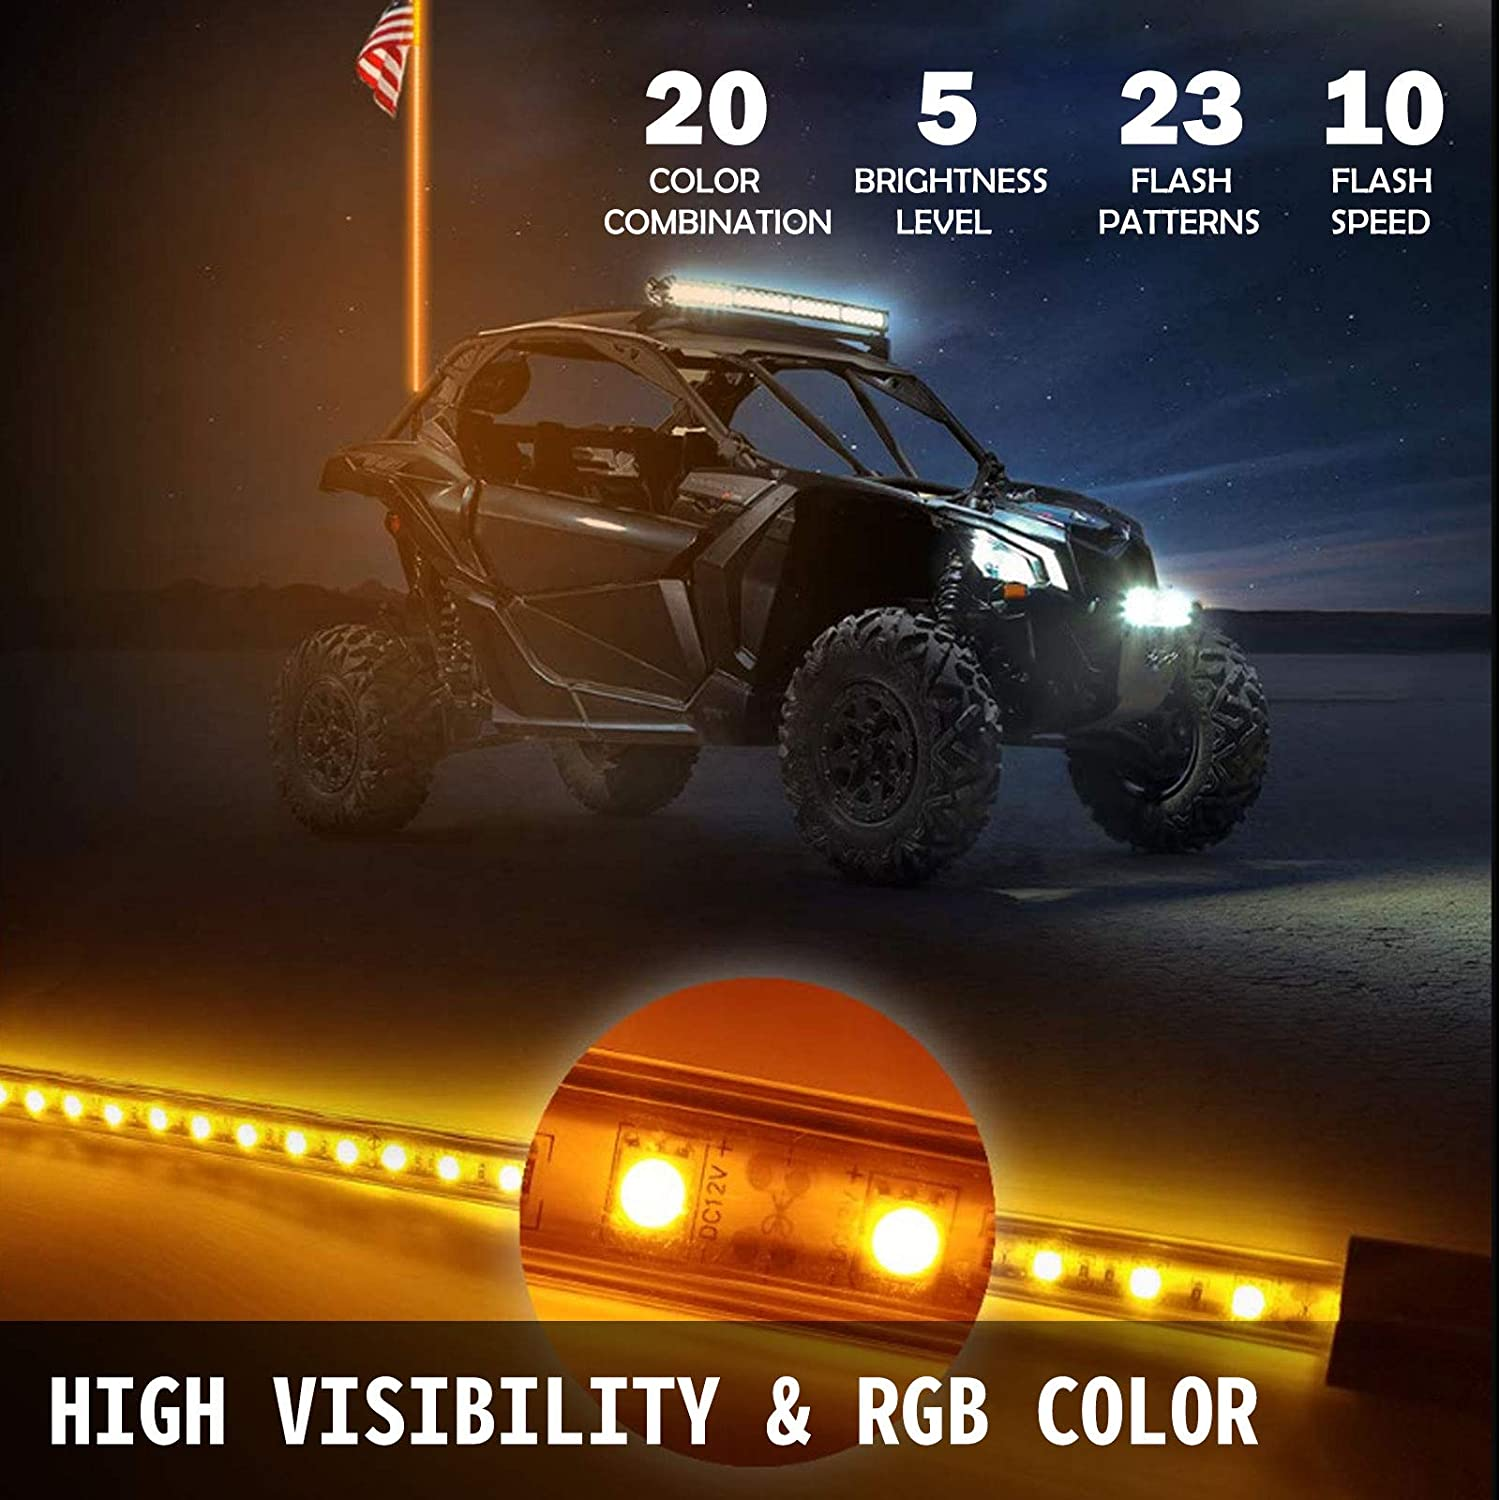 Bestauto Led Whip Lights RGB Color Lighted Whips for UTV 4ft Led CB Antenna 2pcs Off-road Whip Remote Wireless Control LED Whips for Sand Dune Buggy UTV ATV Polaris Accessories RZR 4X4 Truck Jeep